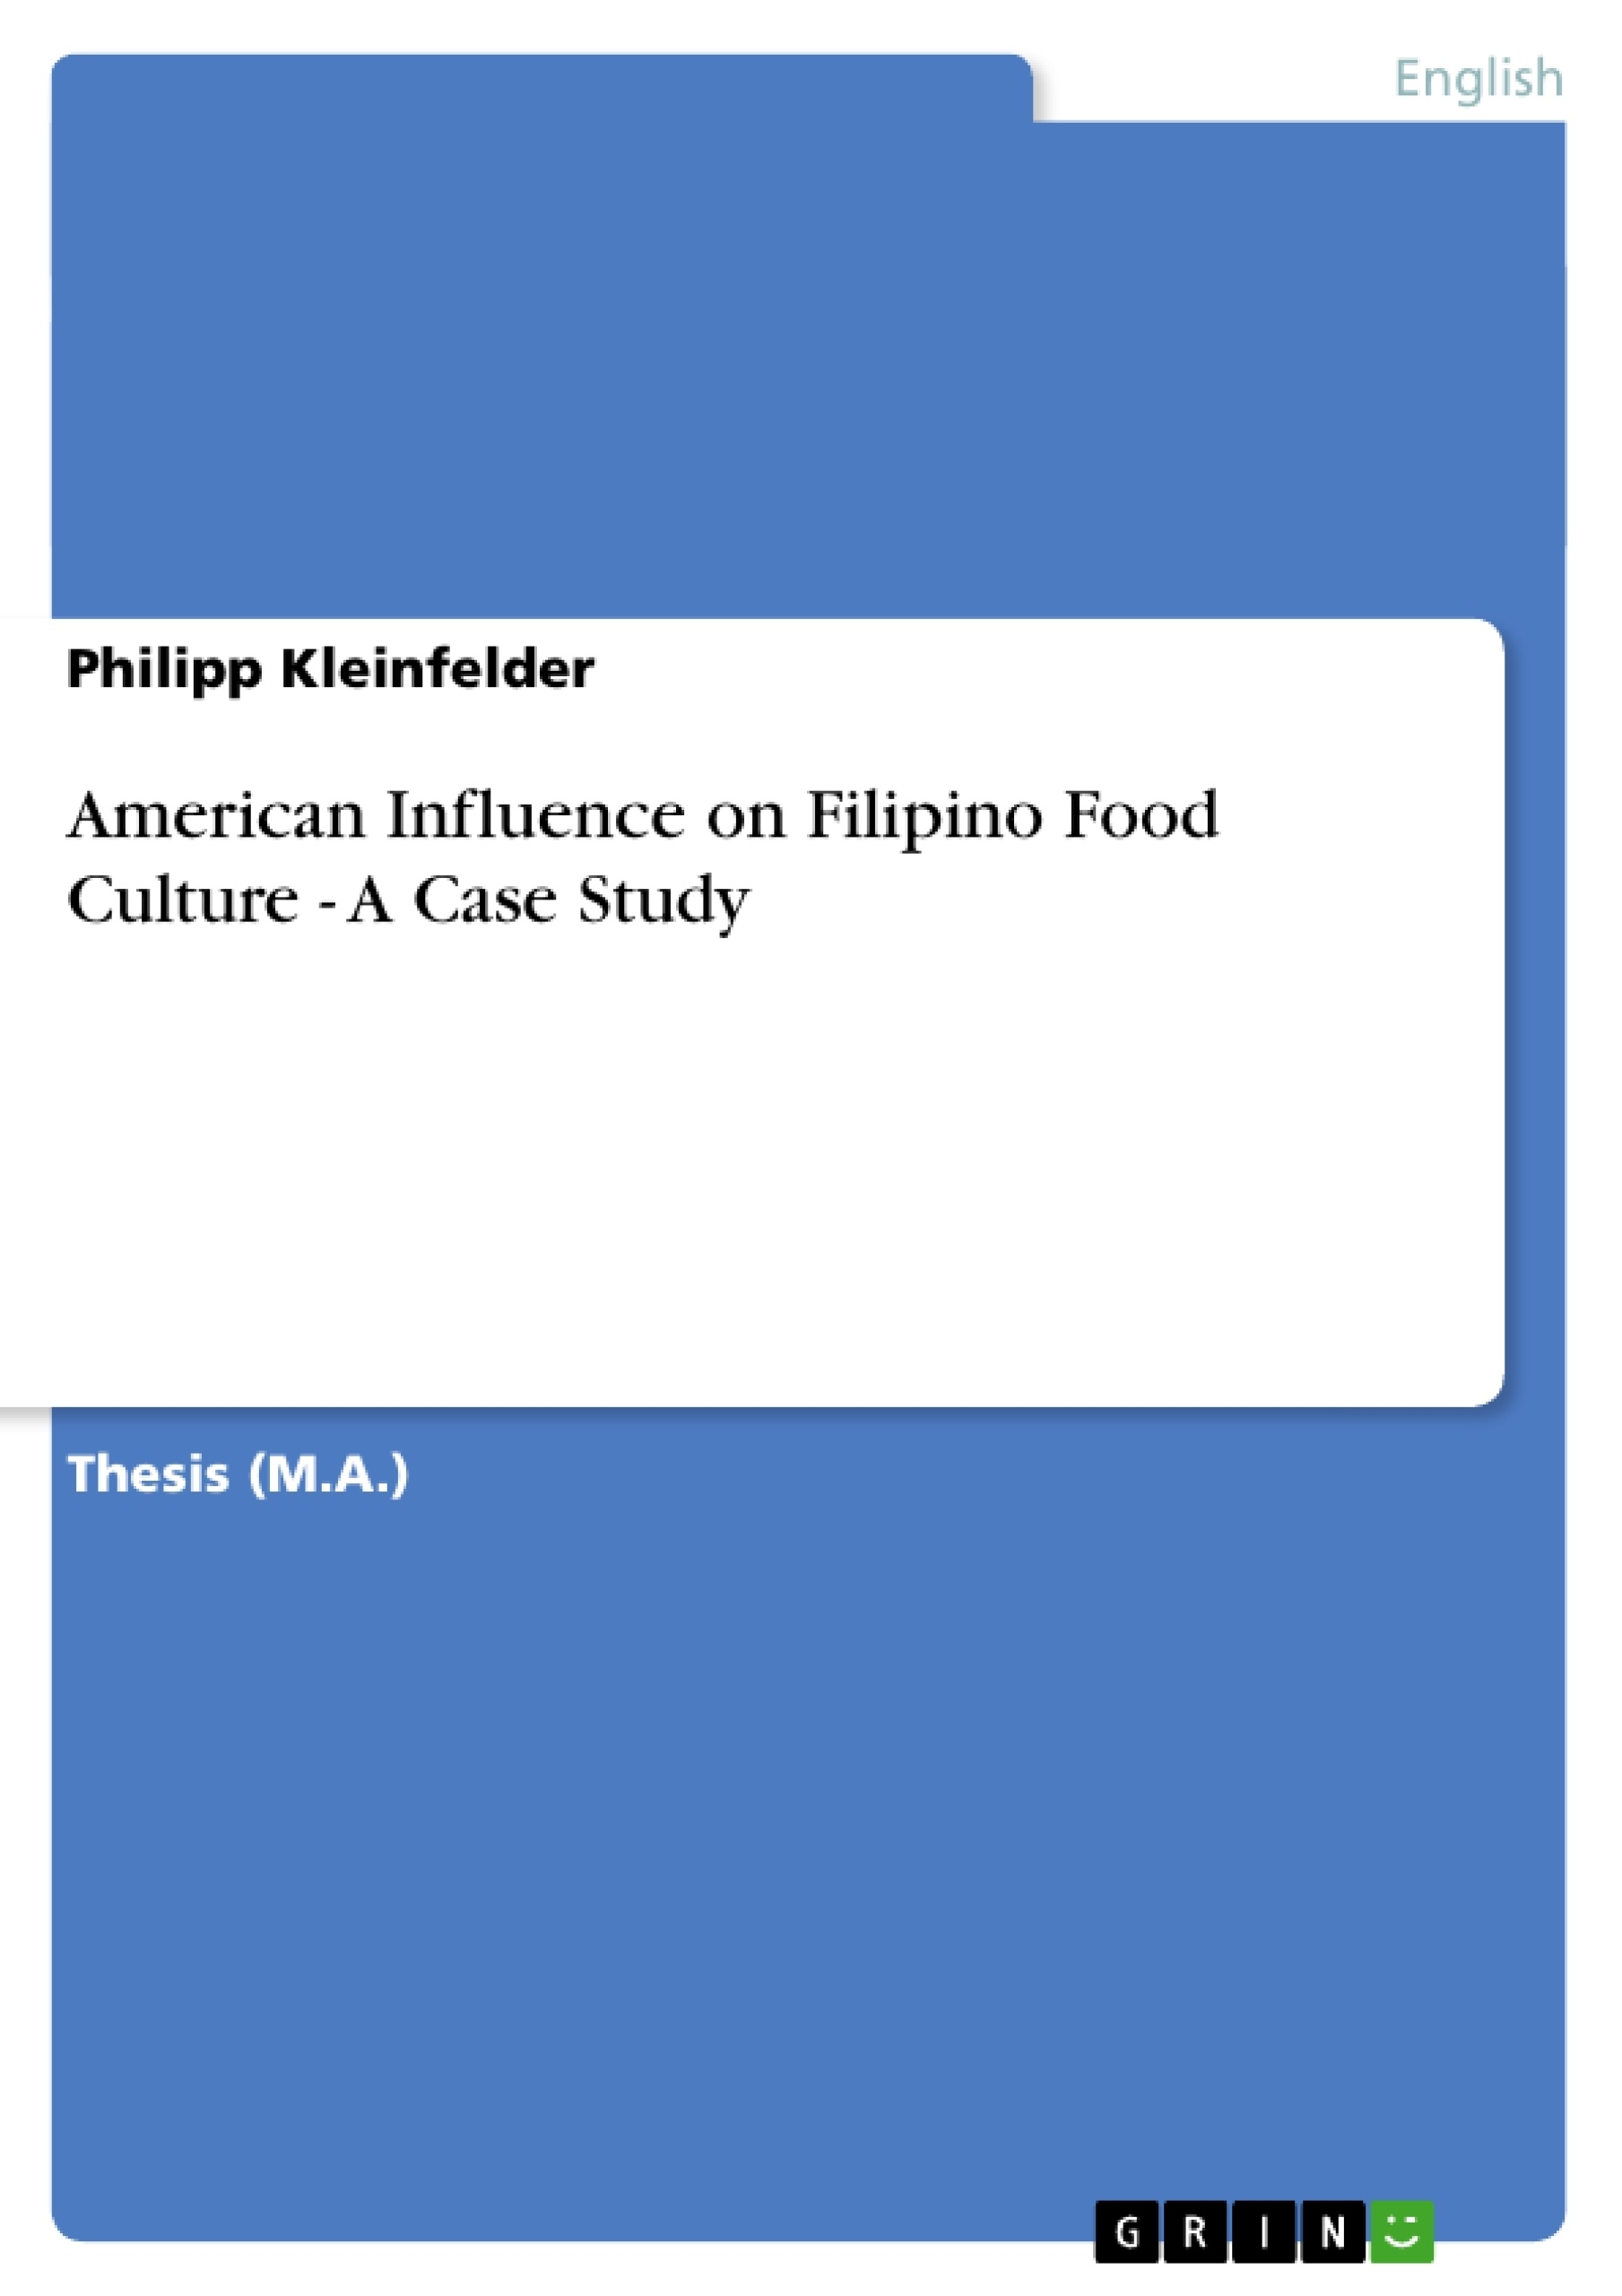 american influence on filipino food culture a case study  upload your own papers earn money and win an iphone x